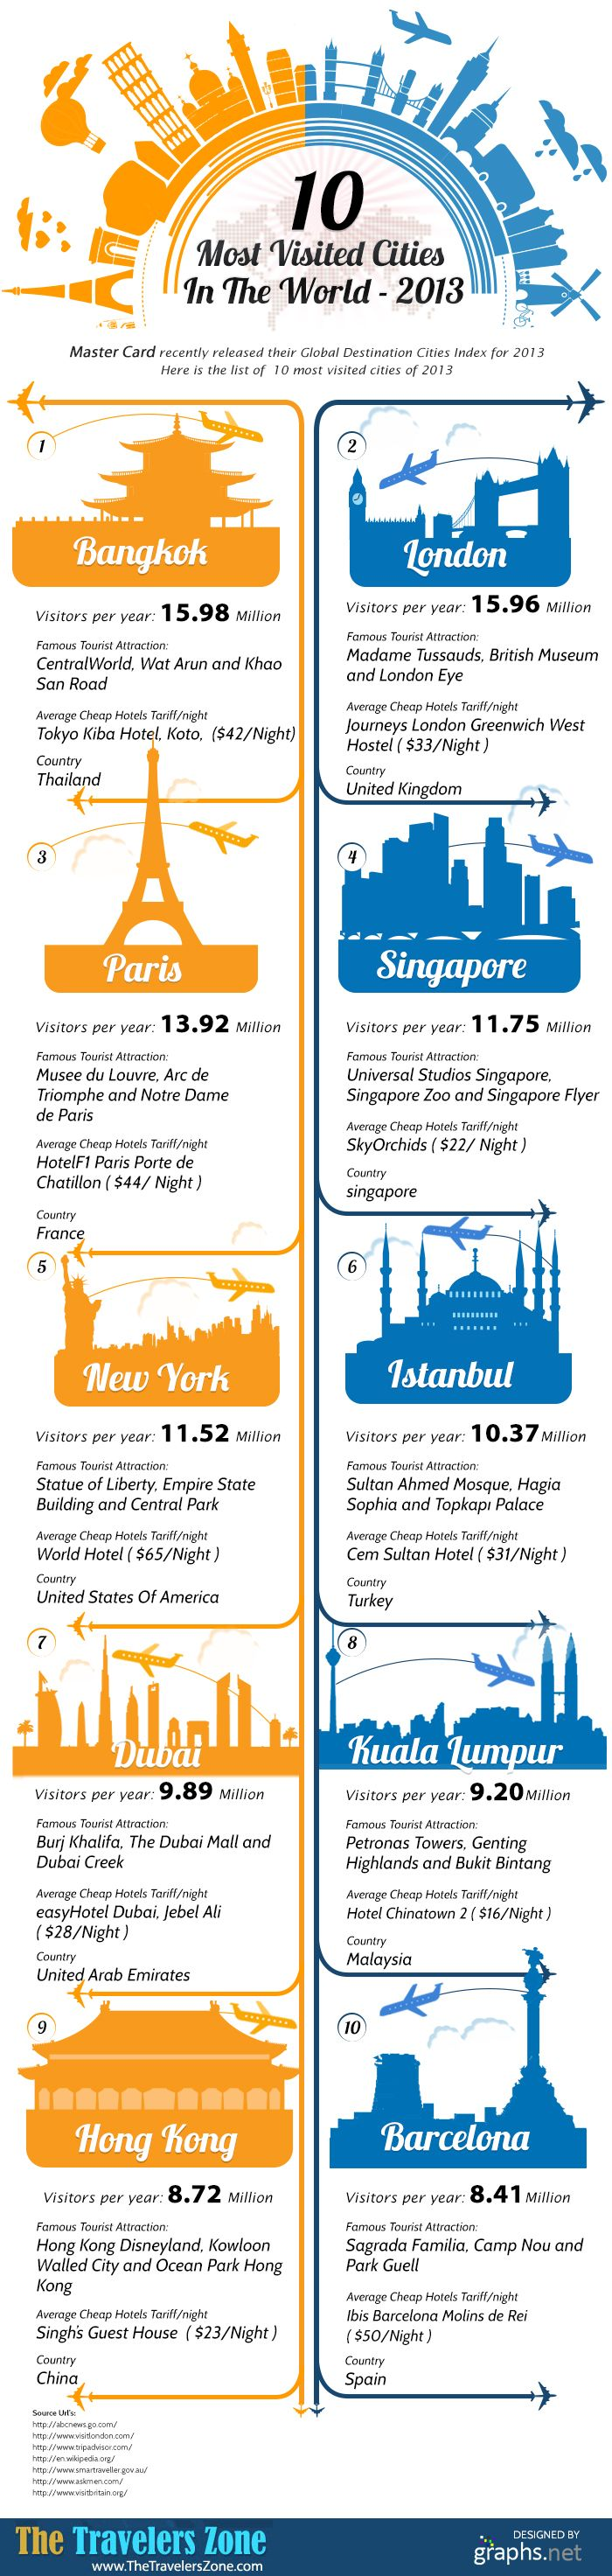 Best Top World Destinations Images On Pinterest Travel - The 10 most visited cities in the us by foreign travelers